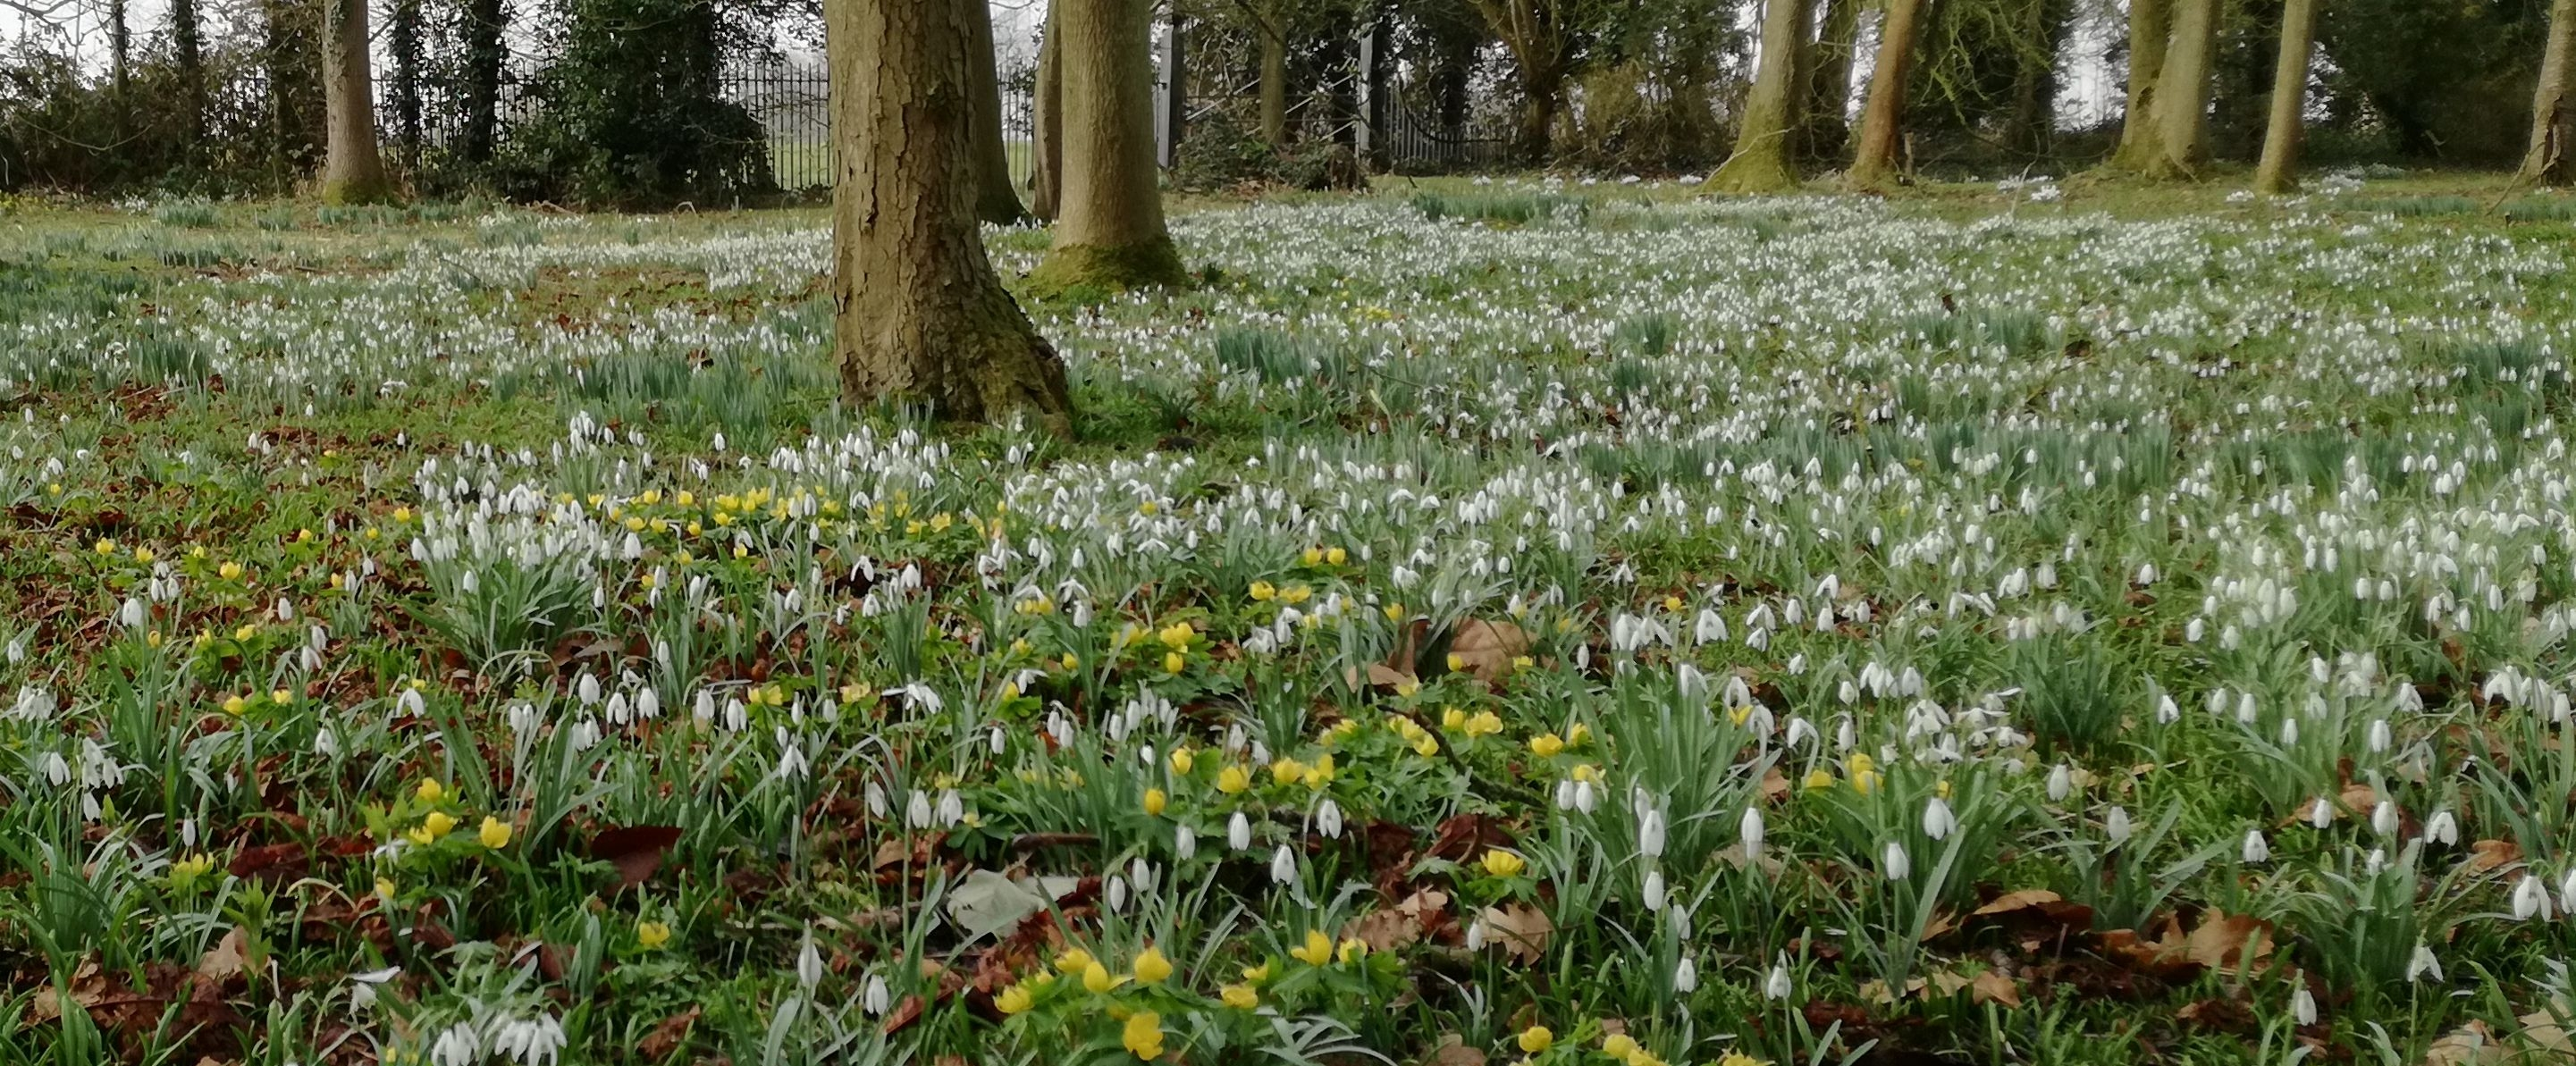 snowdrops and aconites 2018 web version